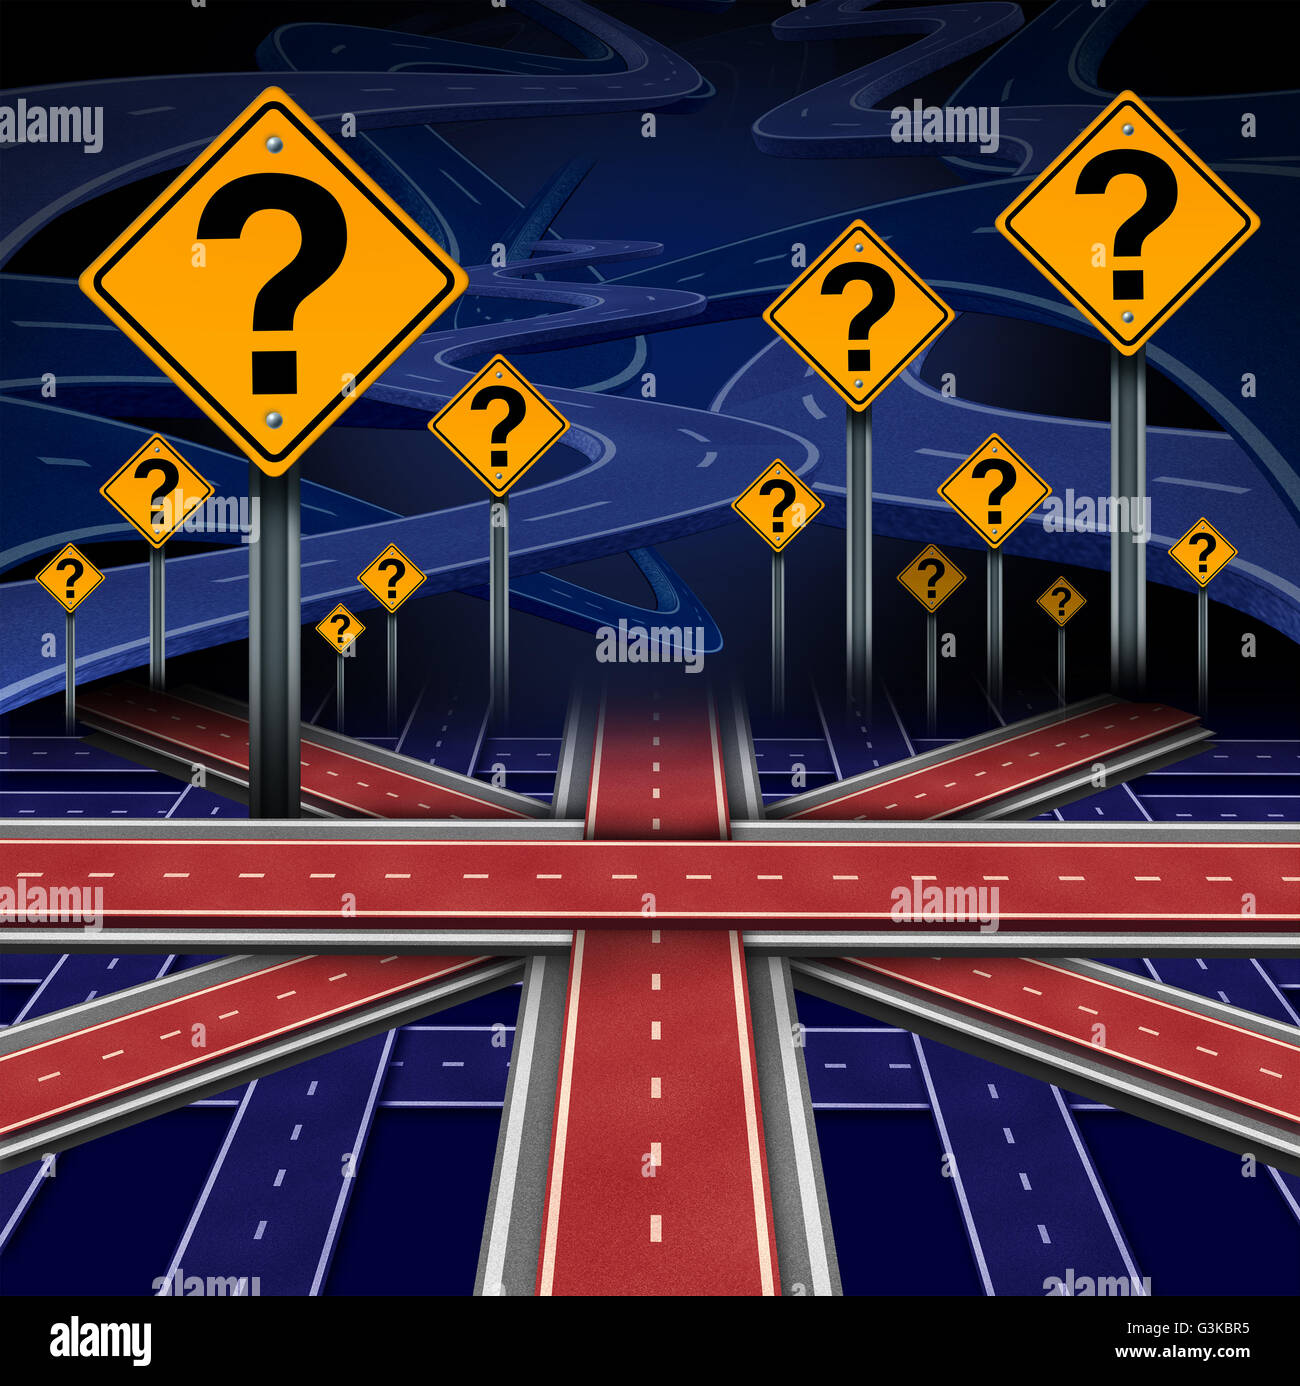 British European question as a brexit concept pertaining to the UK vote confusion and Euro zone and Europe membership - Stock Image